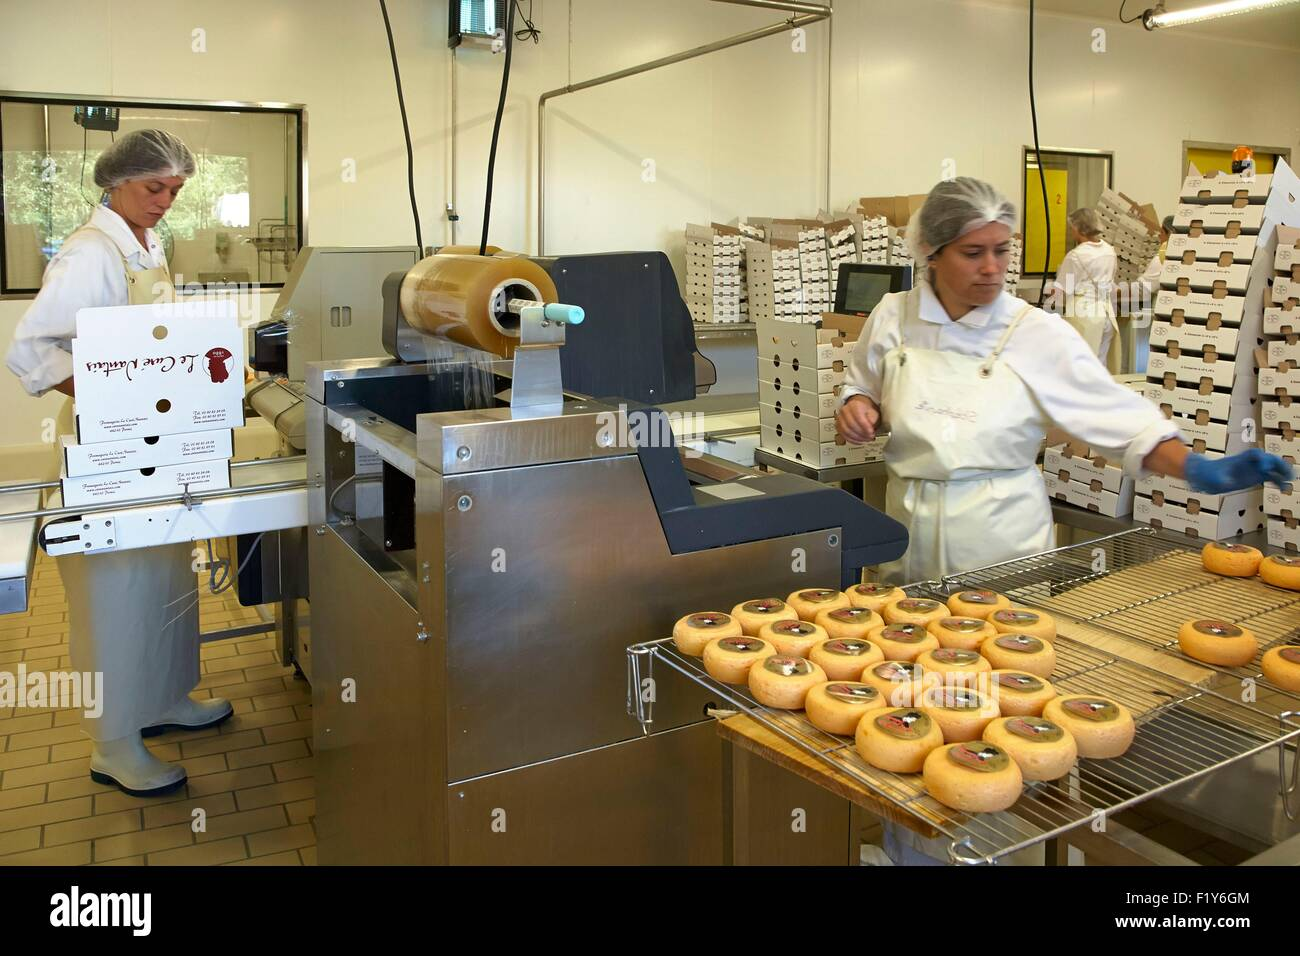 France, Loire Atlantique, Pornic, Cure Nantais cheese factory, cheese packaging - Stock Image